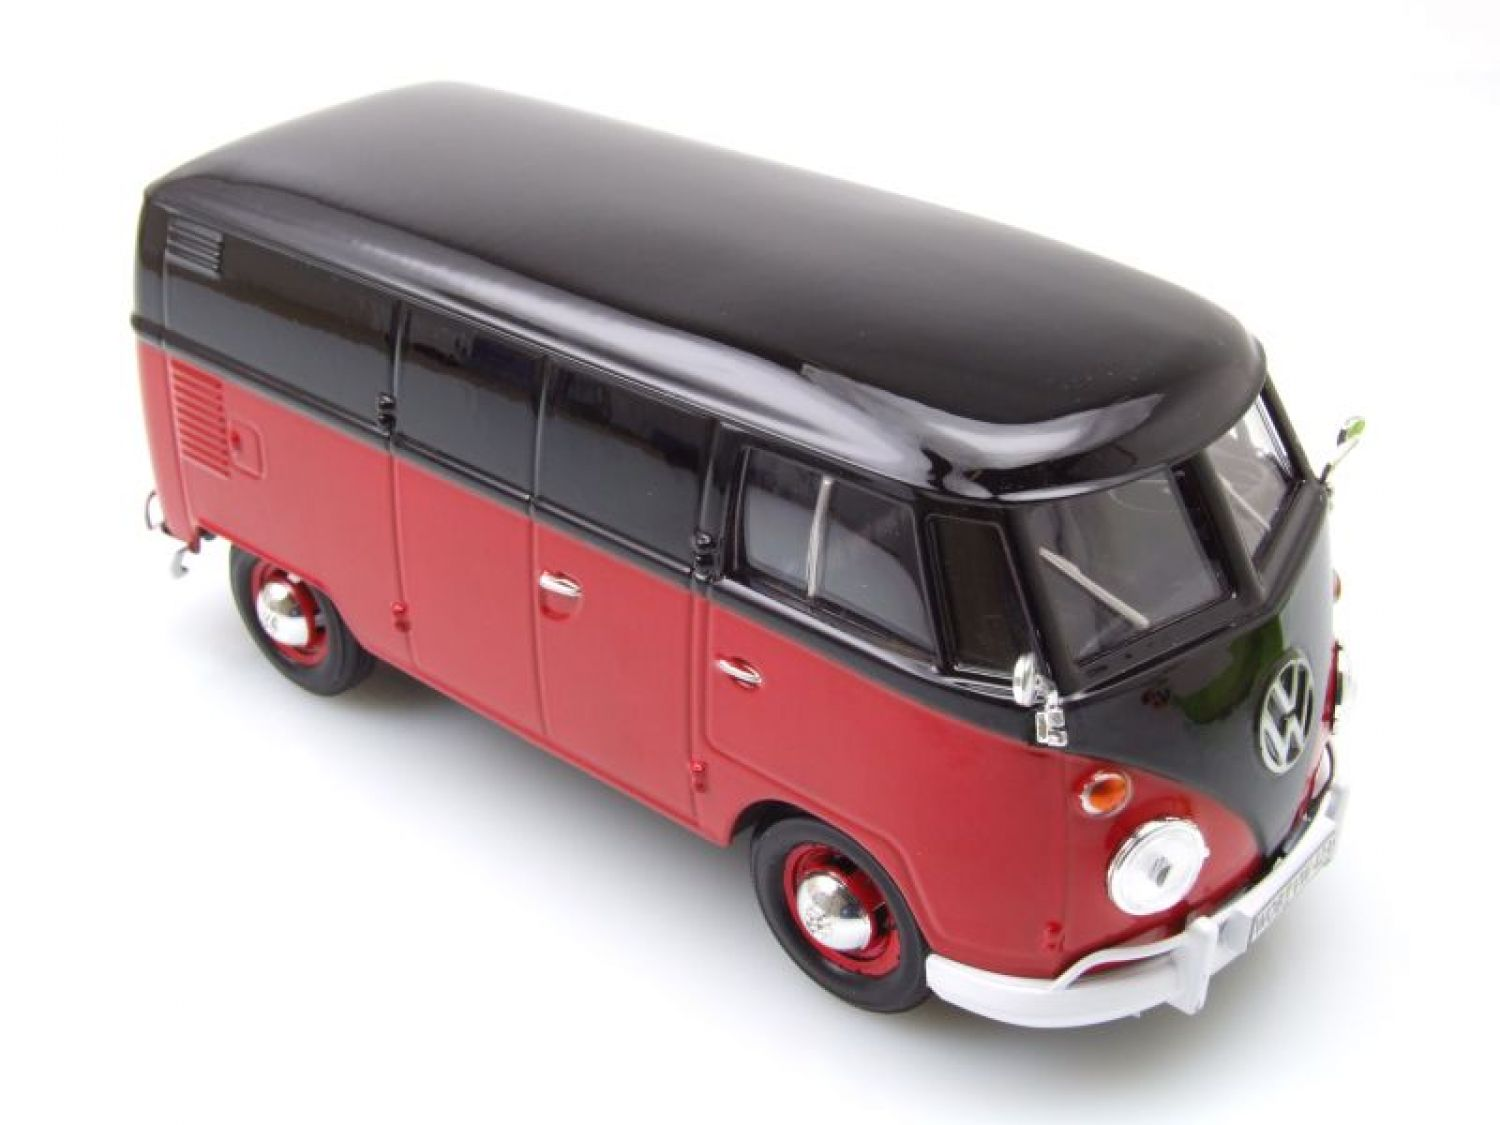 vw t1 bus kastenwagen rot schwarz modellauto 1 24. Black Bedroom Furniture Sets. Home Design Ideas